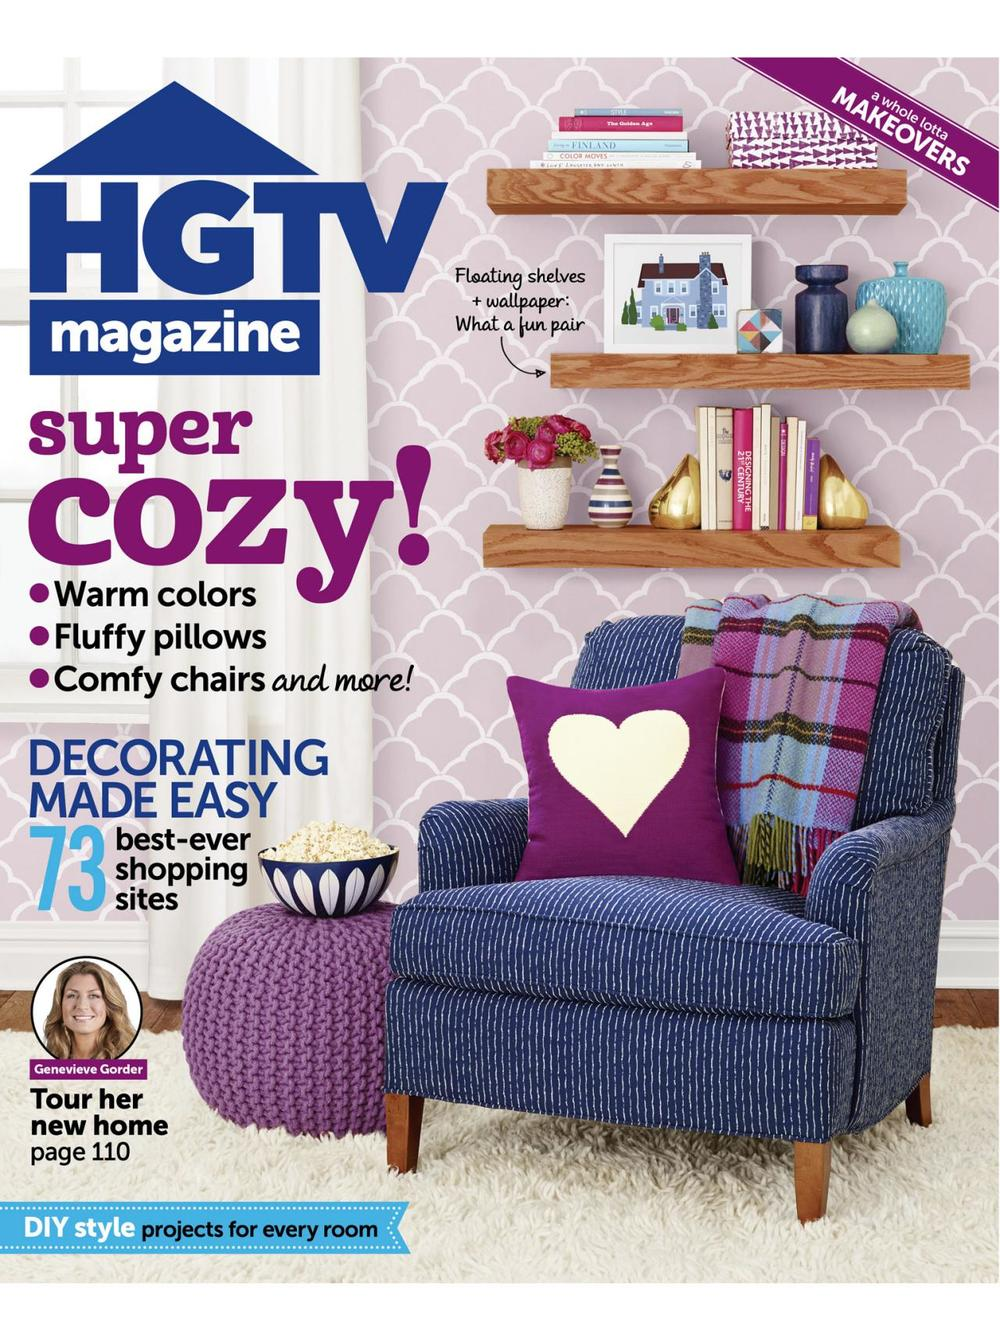 RX-HGMAG024_October-2014-cover-3x4.jpg.rend.hgtvcom.1280.1707.jpeg